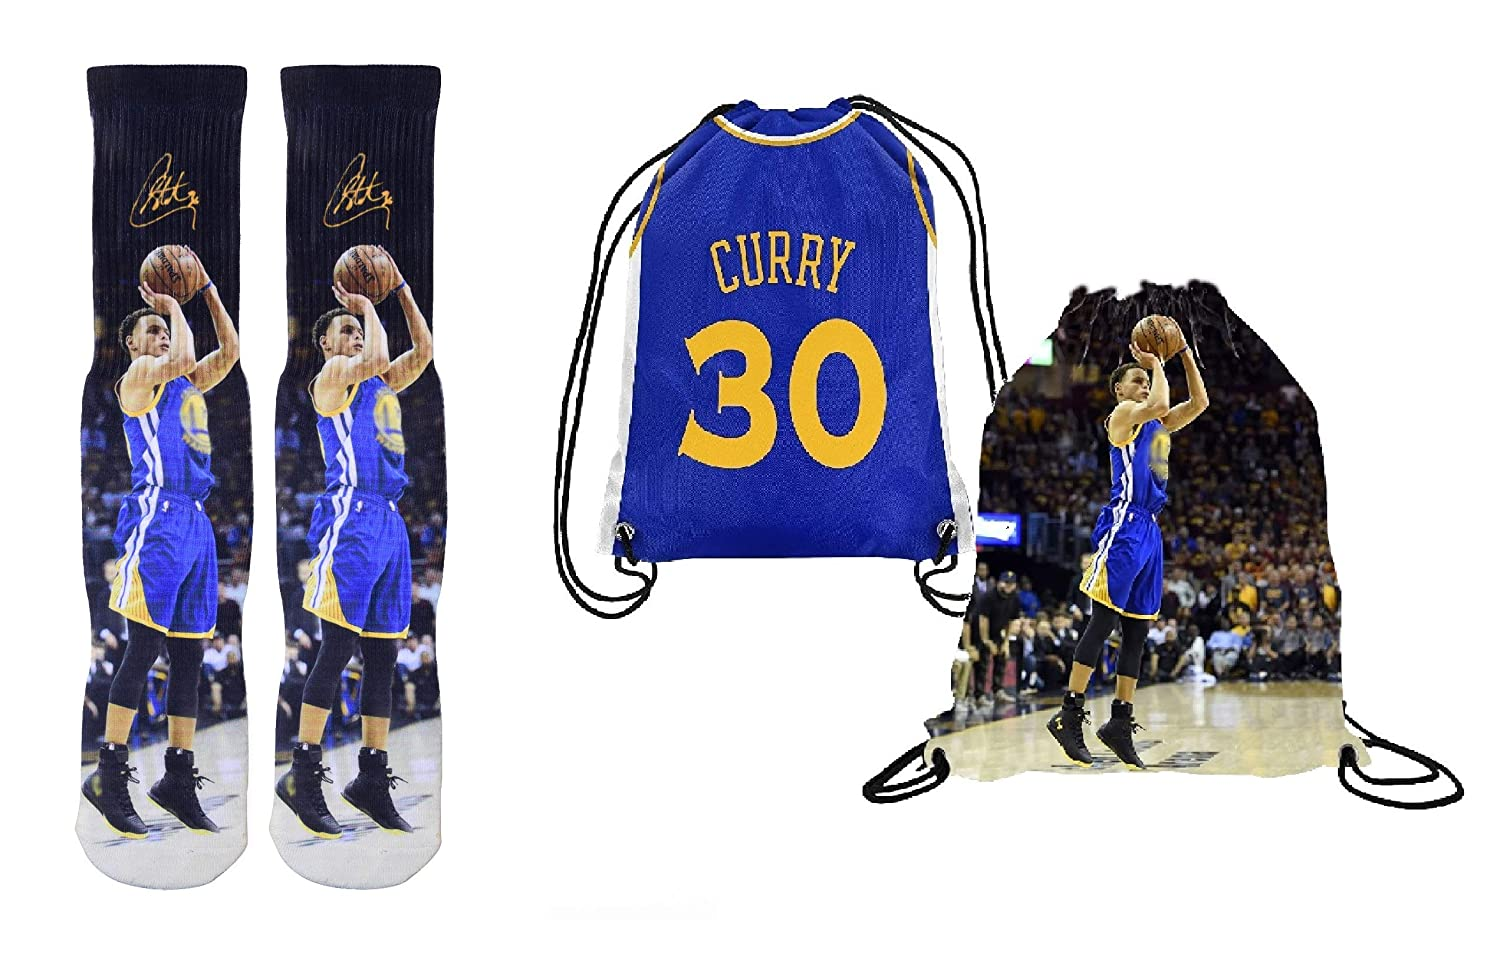 d2c526db9dad Amazon.com   Forever Fanatics Curry 30 Ultimate Basketball Fan Gift Set  Bundle ✓ Curry 30 Crew Socks Sizes 6-13 ✓ Gift Packaging in Curry 30  Picture ...